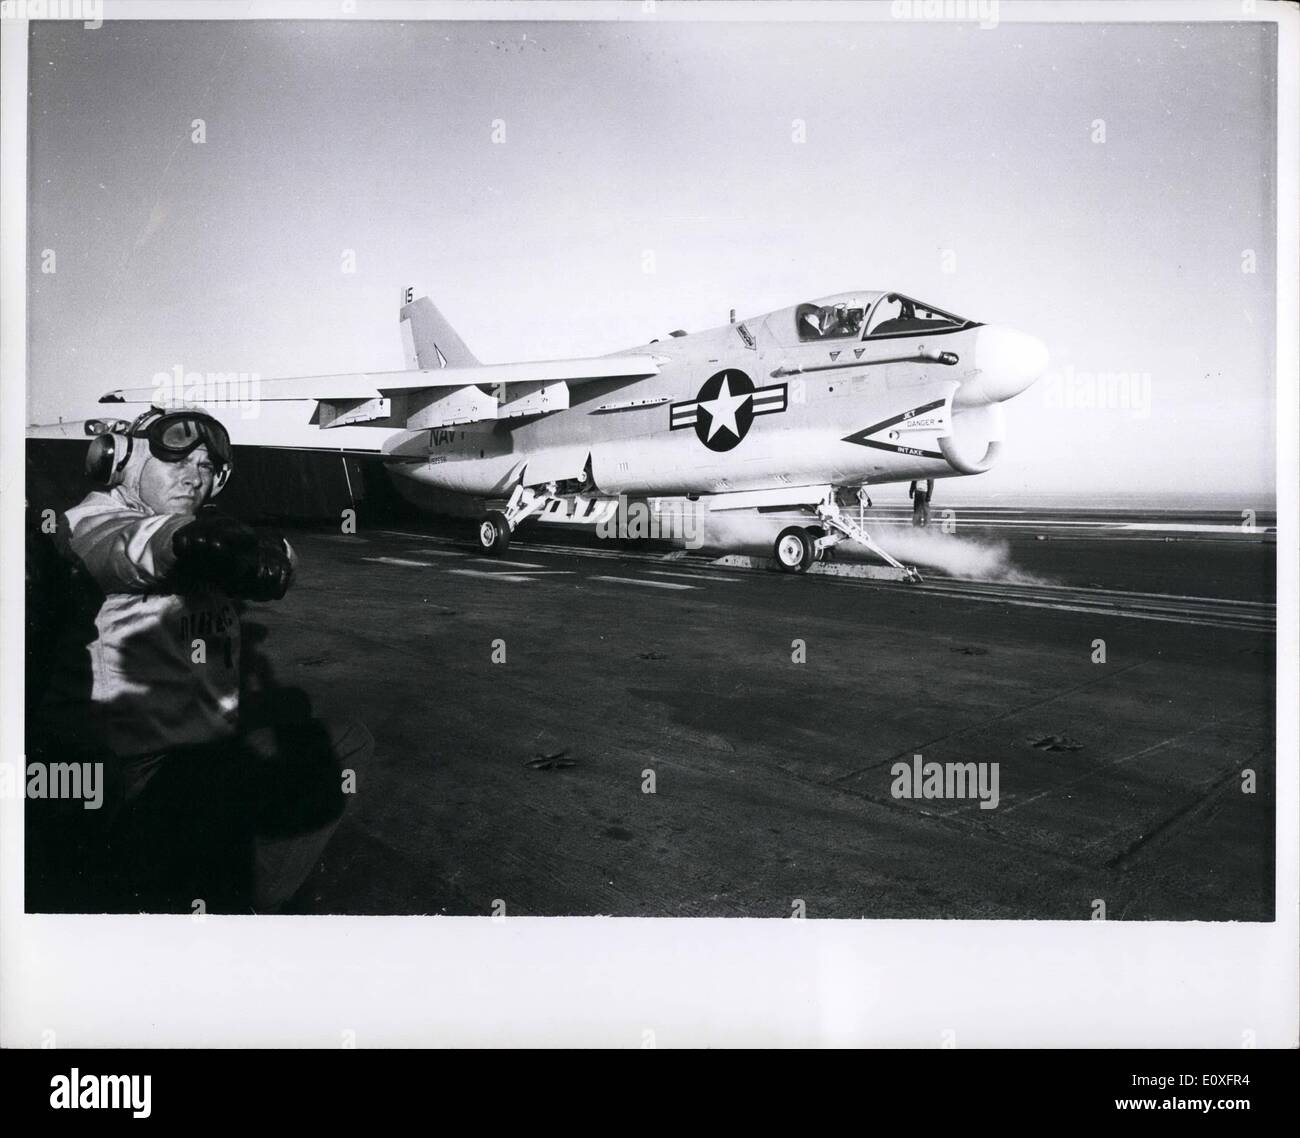 Nov. 11, 1966 - A 7A Corsair II is catapulted from the USS America (CVA-66) during flight operations. - Stock Image